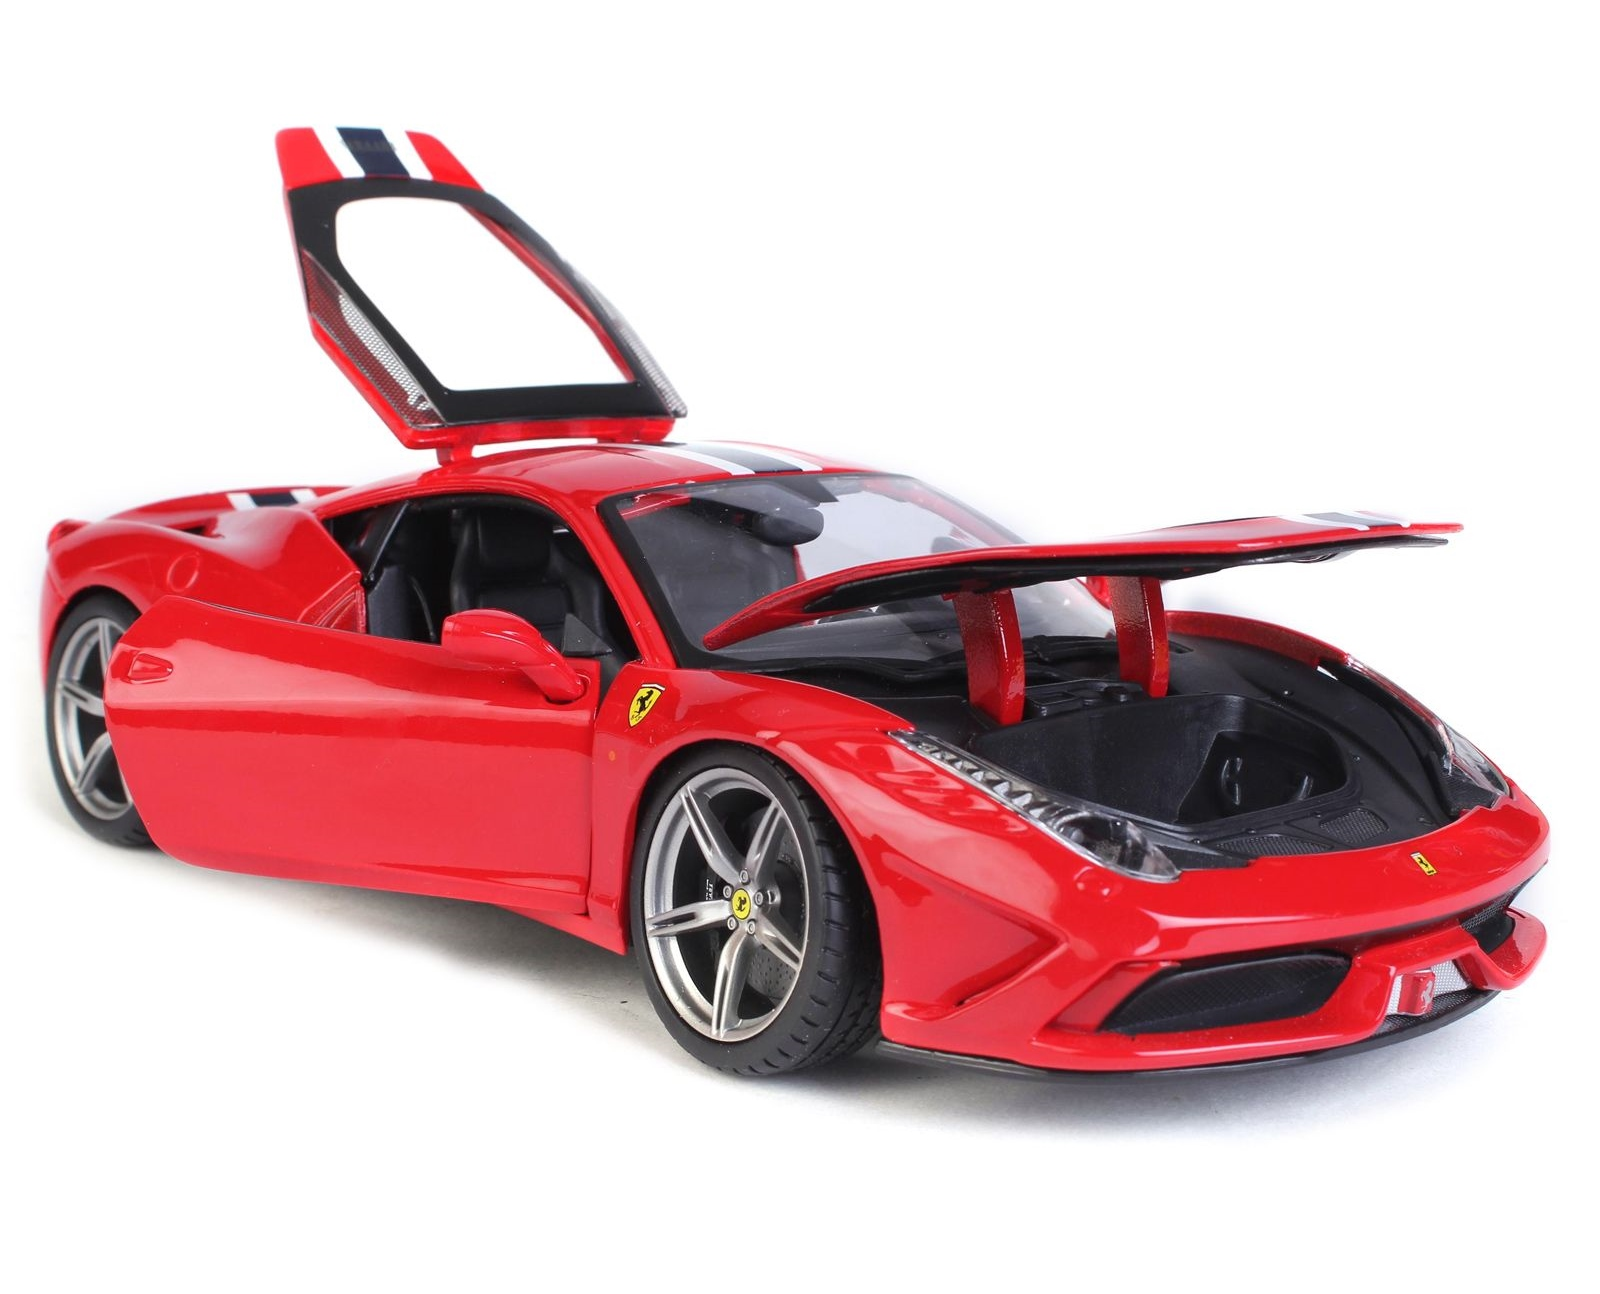 bburago ferrari 458 speciale scale model 1 18. Black Bedroom Furniture Sets. Home Design Ideas